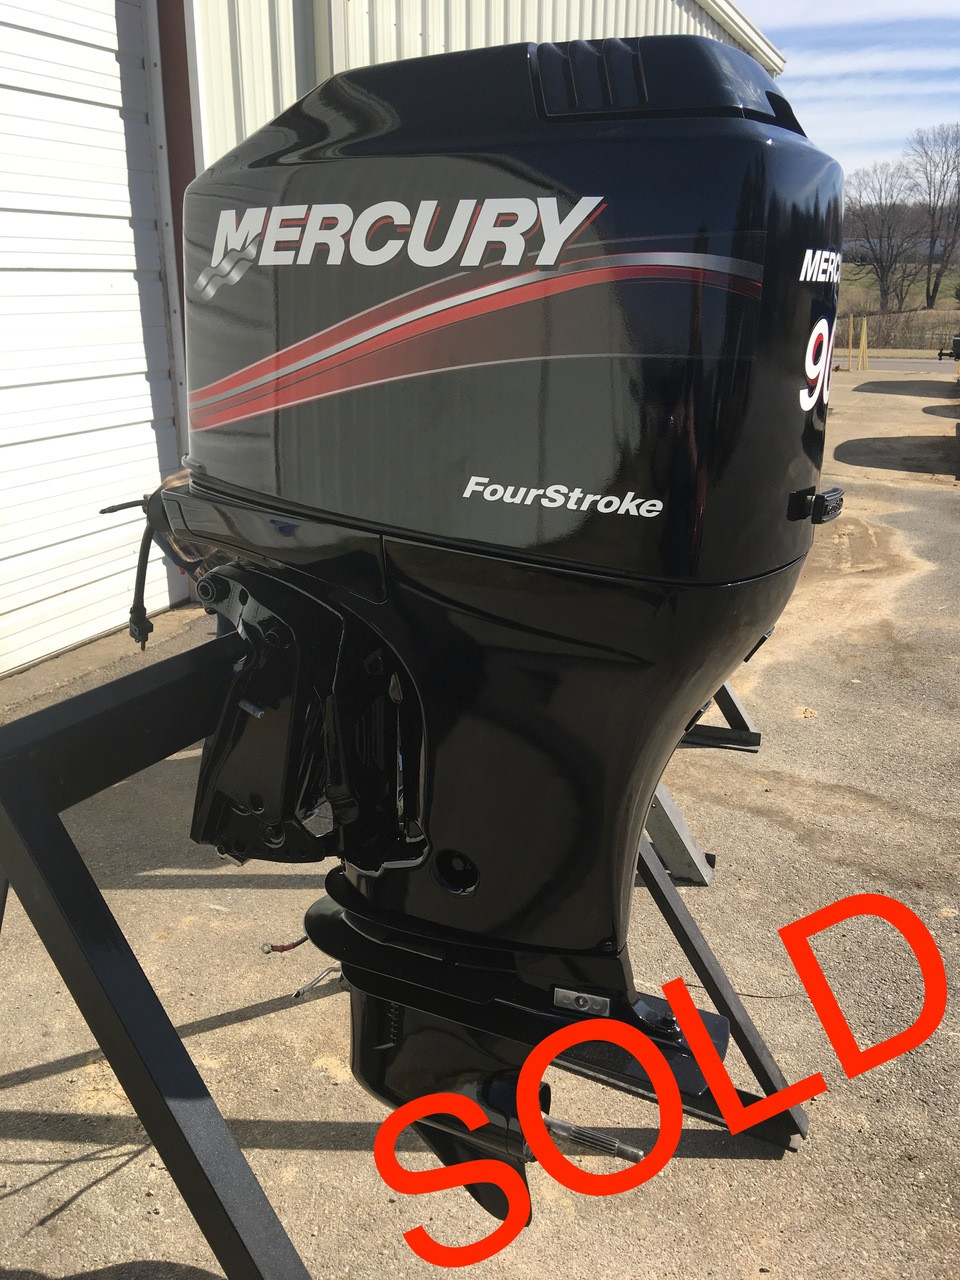 90 Hp Mercury Outboard >> 2001 Mercury 90 Hp 4 Cylinder Carbureted 4 Stroke 20 Outboard Motor